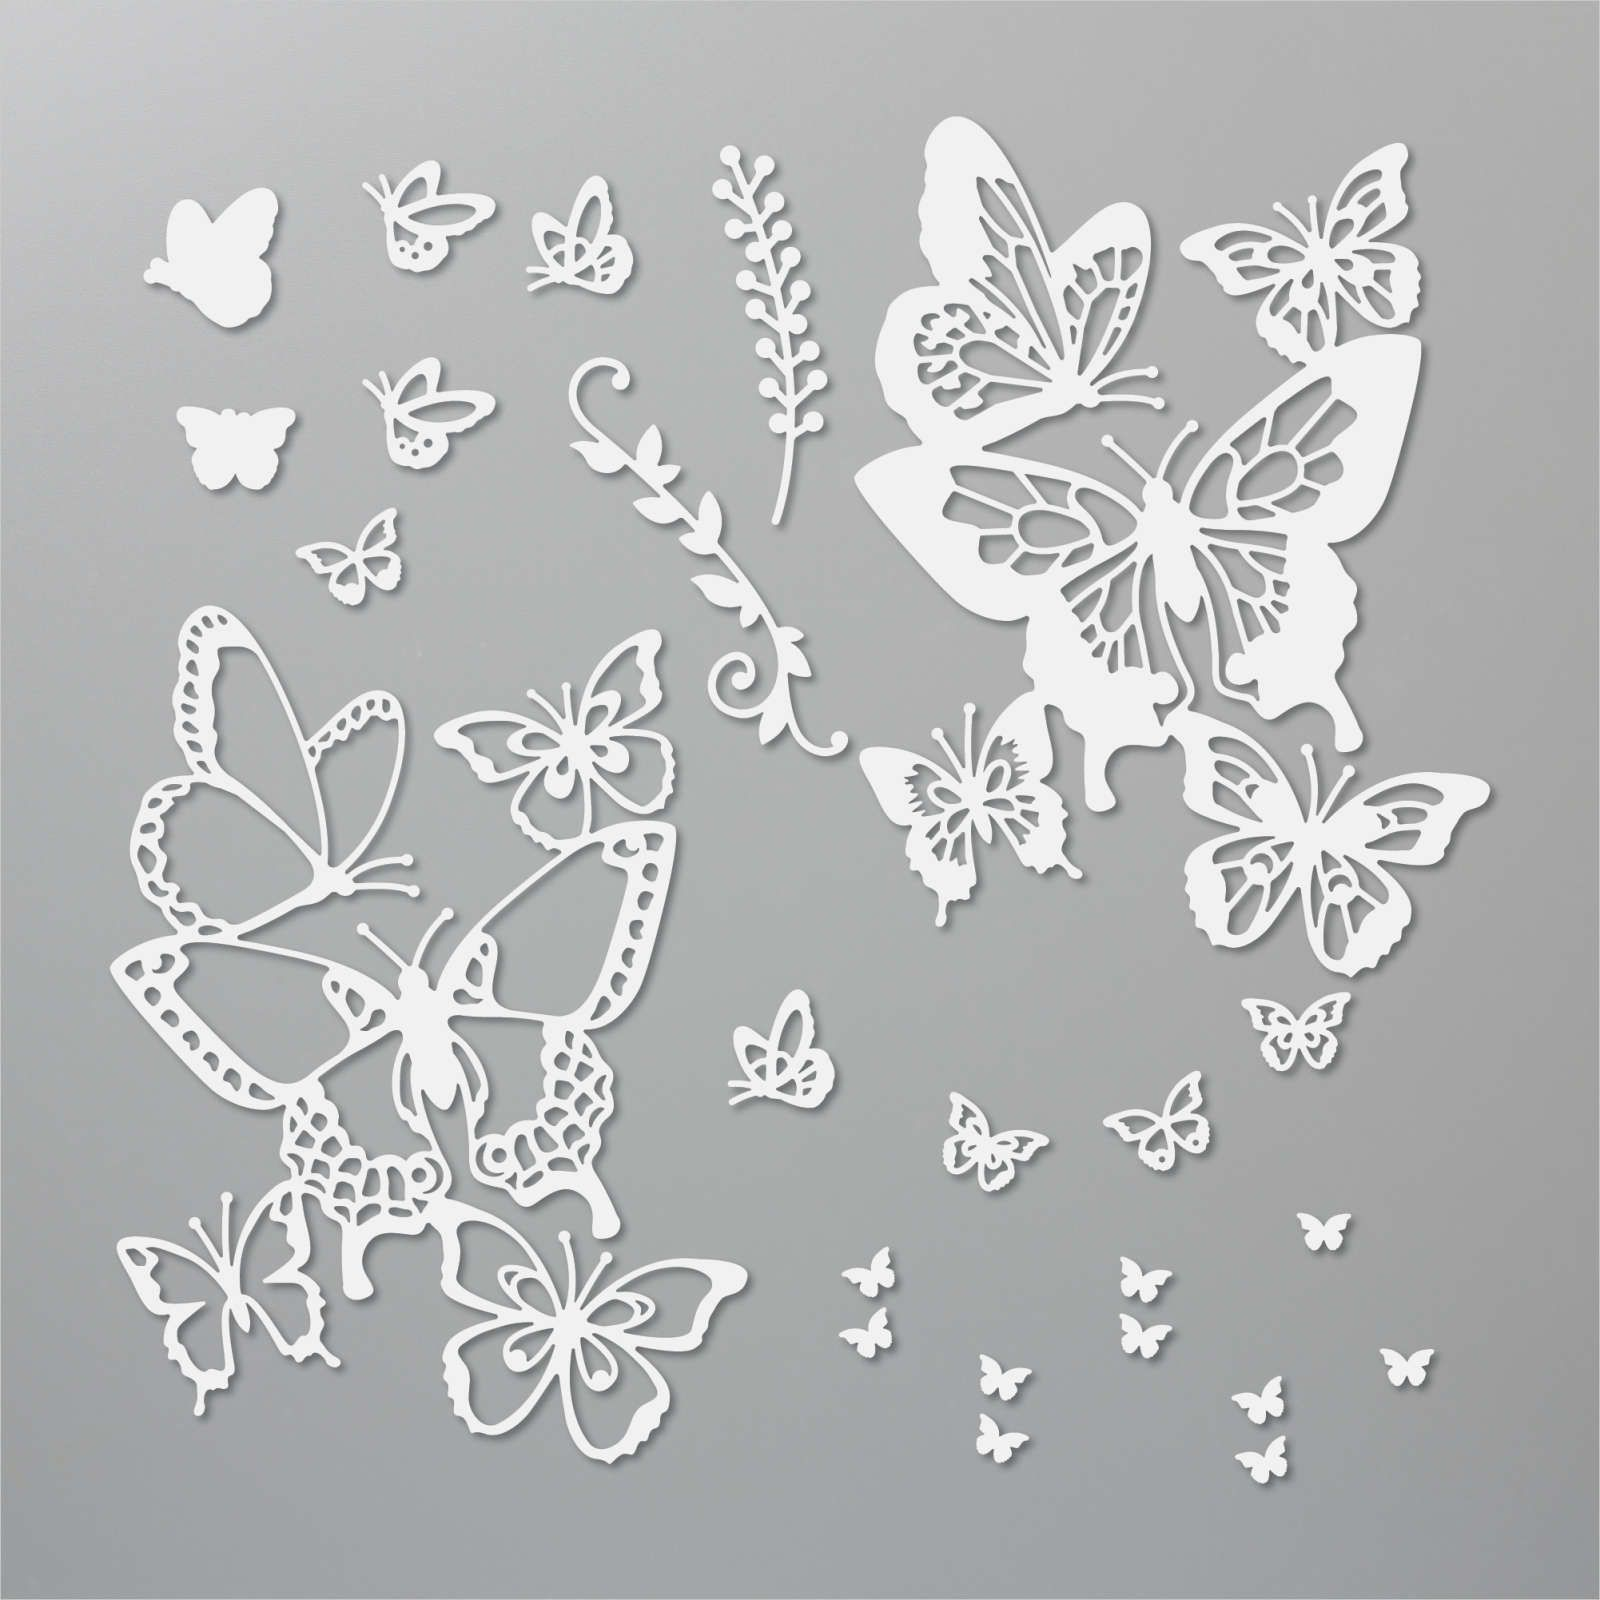 151819 Poinçons Beaux papillons stampinup